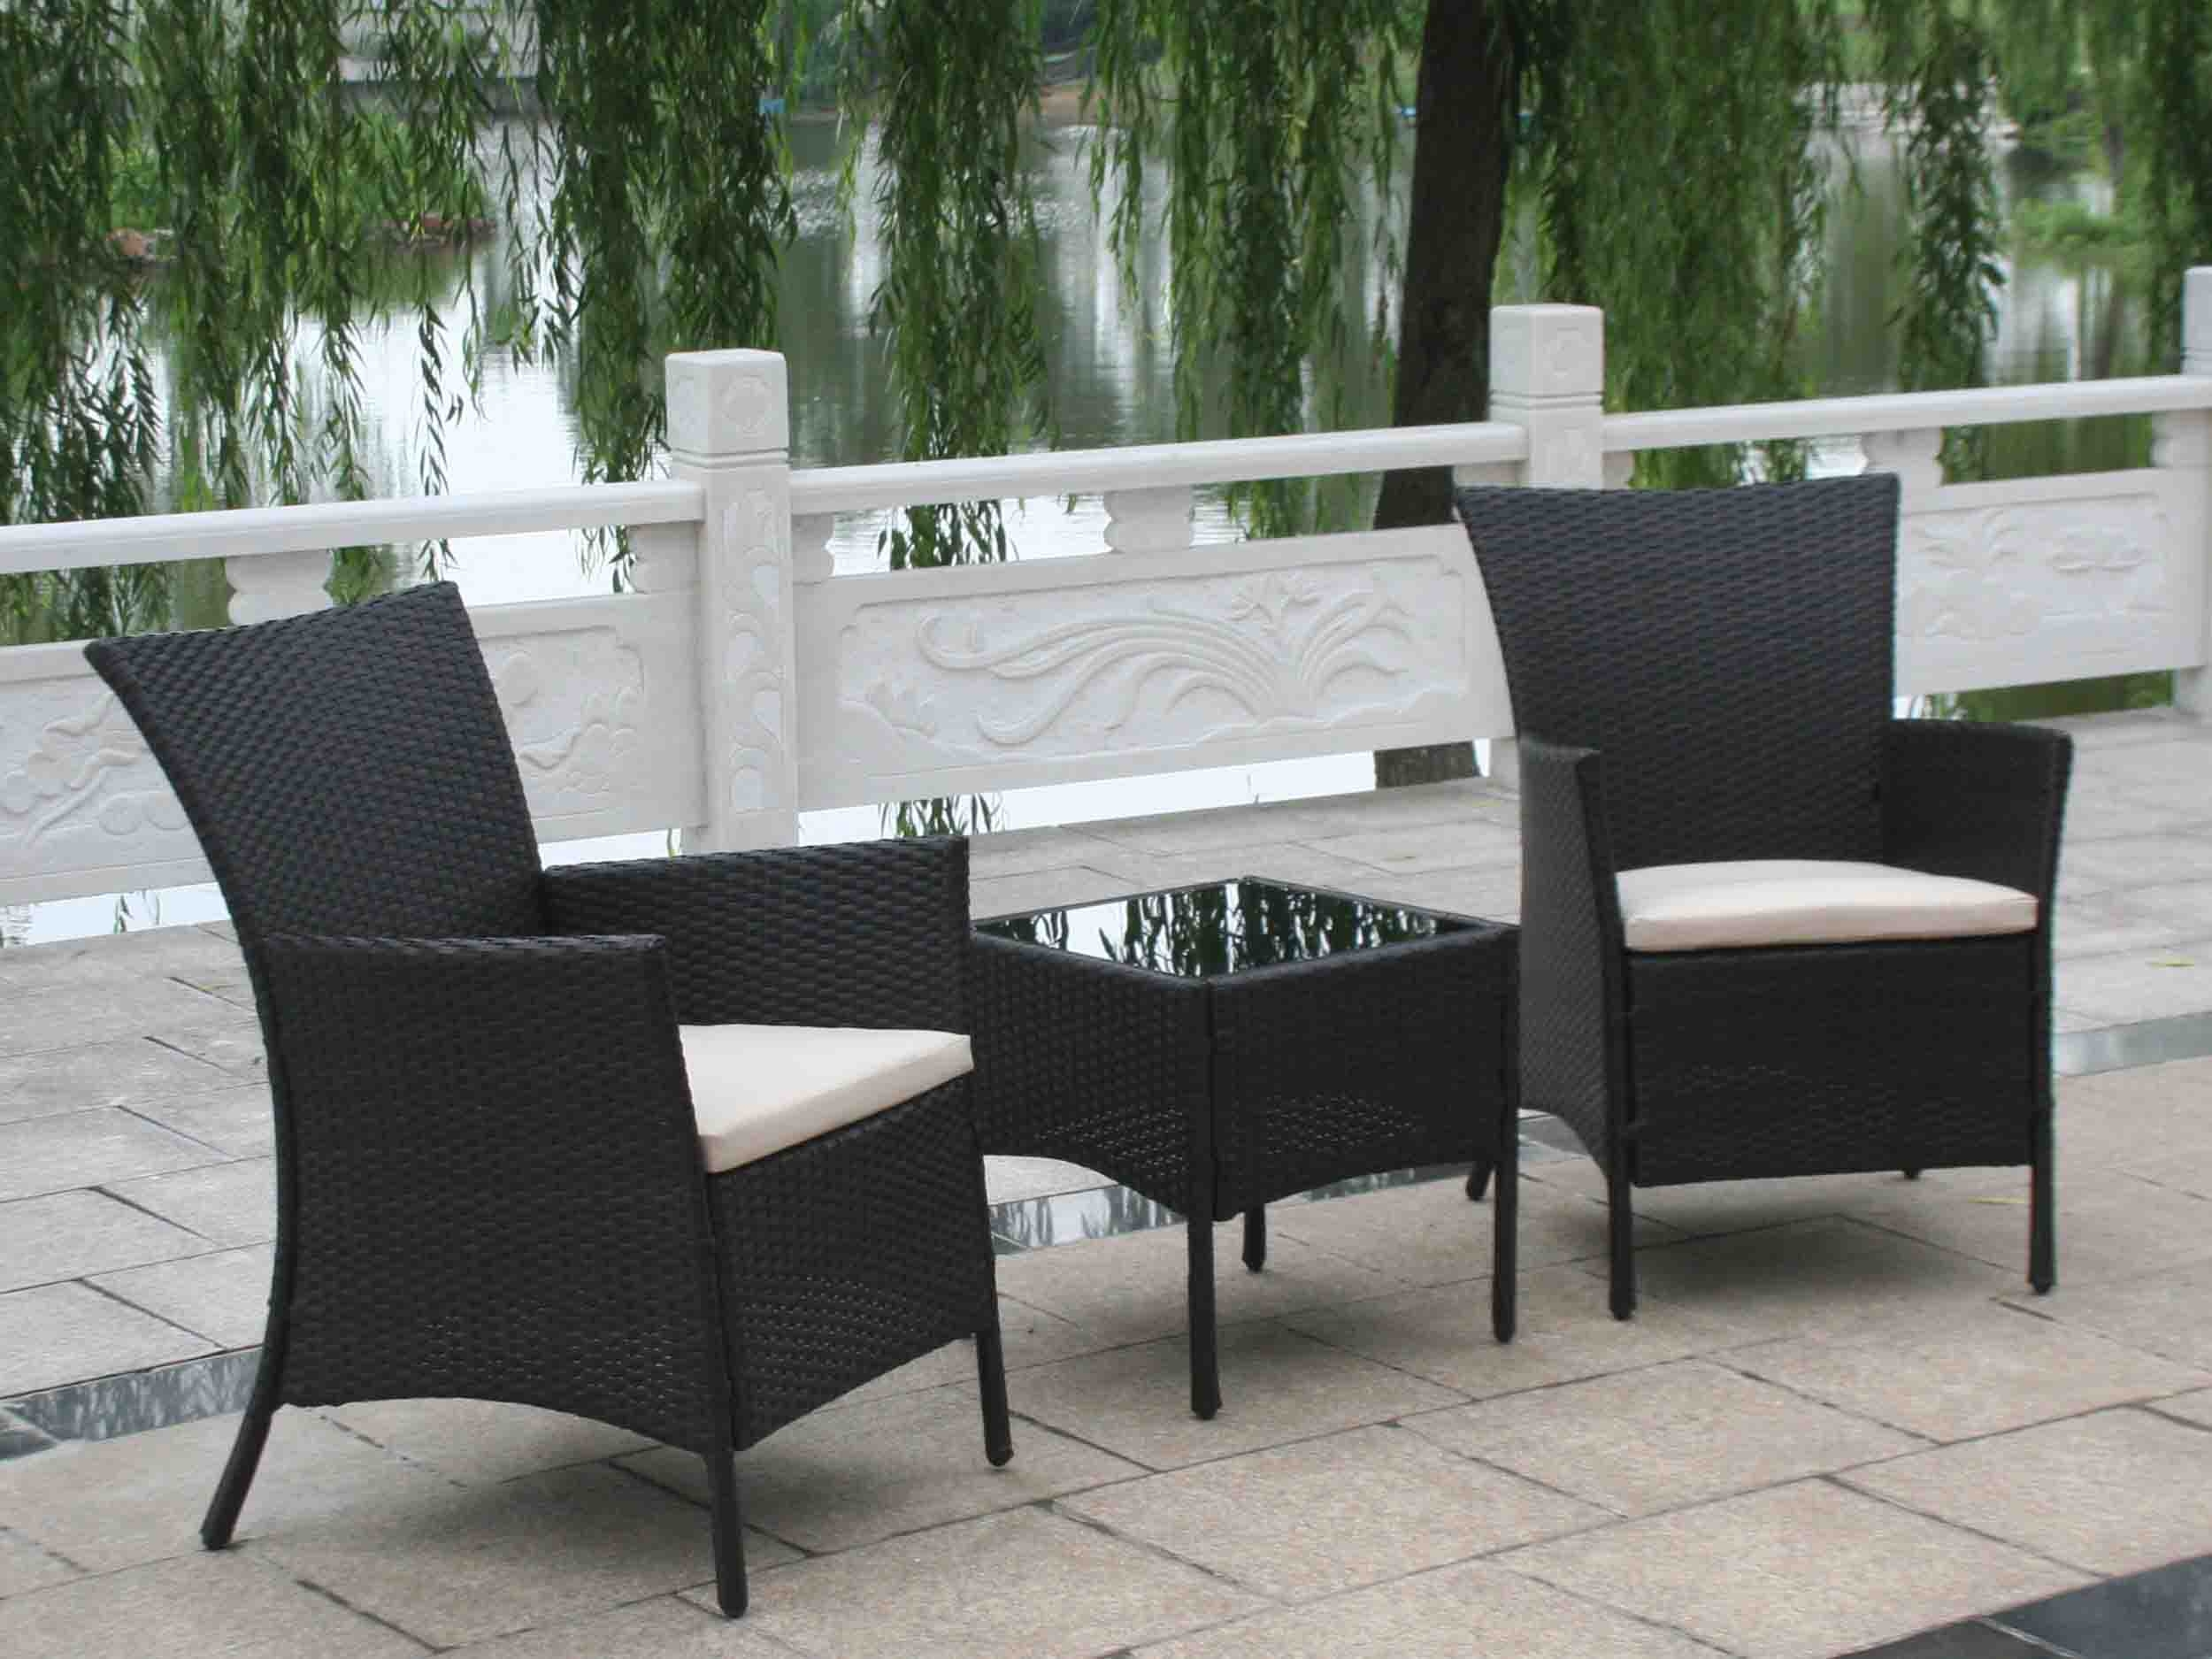 Furniture Perfect Choice Of Outdoor Furniture With Smart Pvc With Regard To Outdoor Sofas And Chairs (Image 9 of 15)